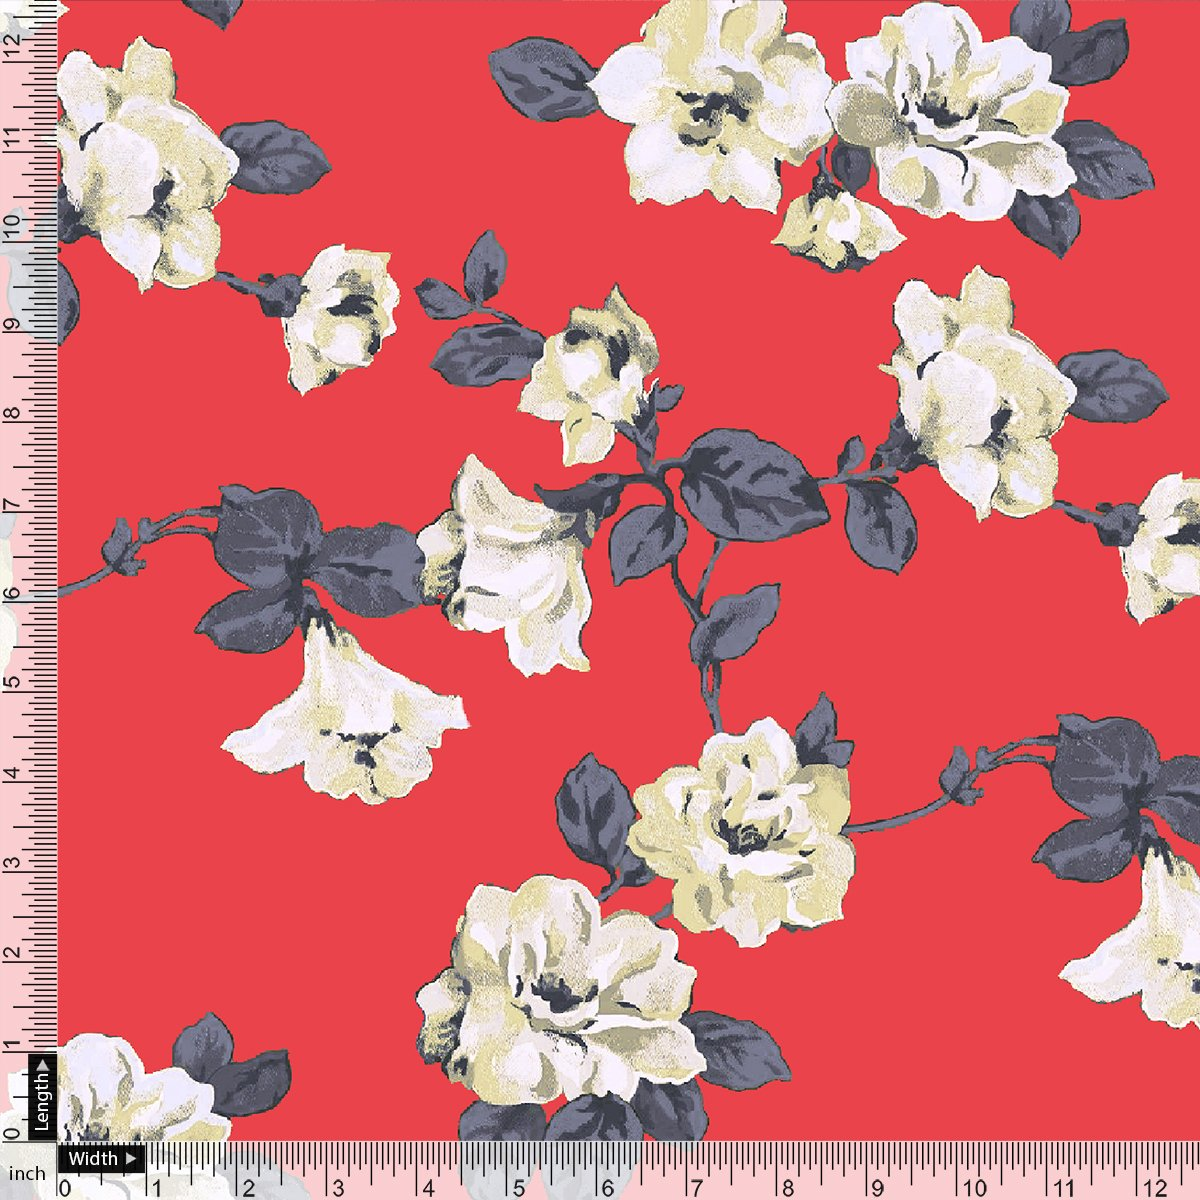 Red And White Flower Digital Printed Fabric - Crepe